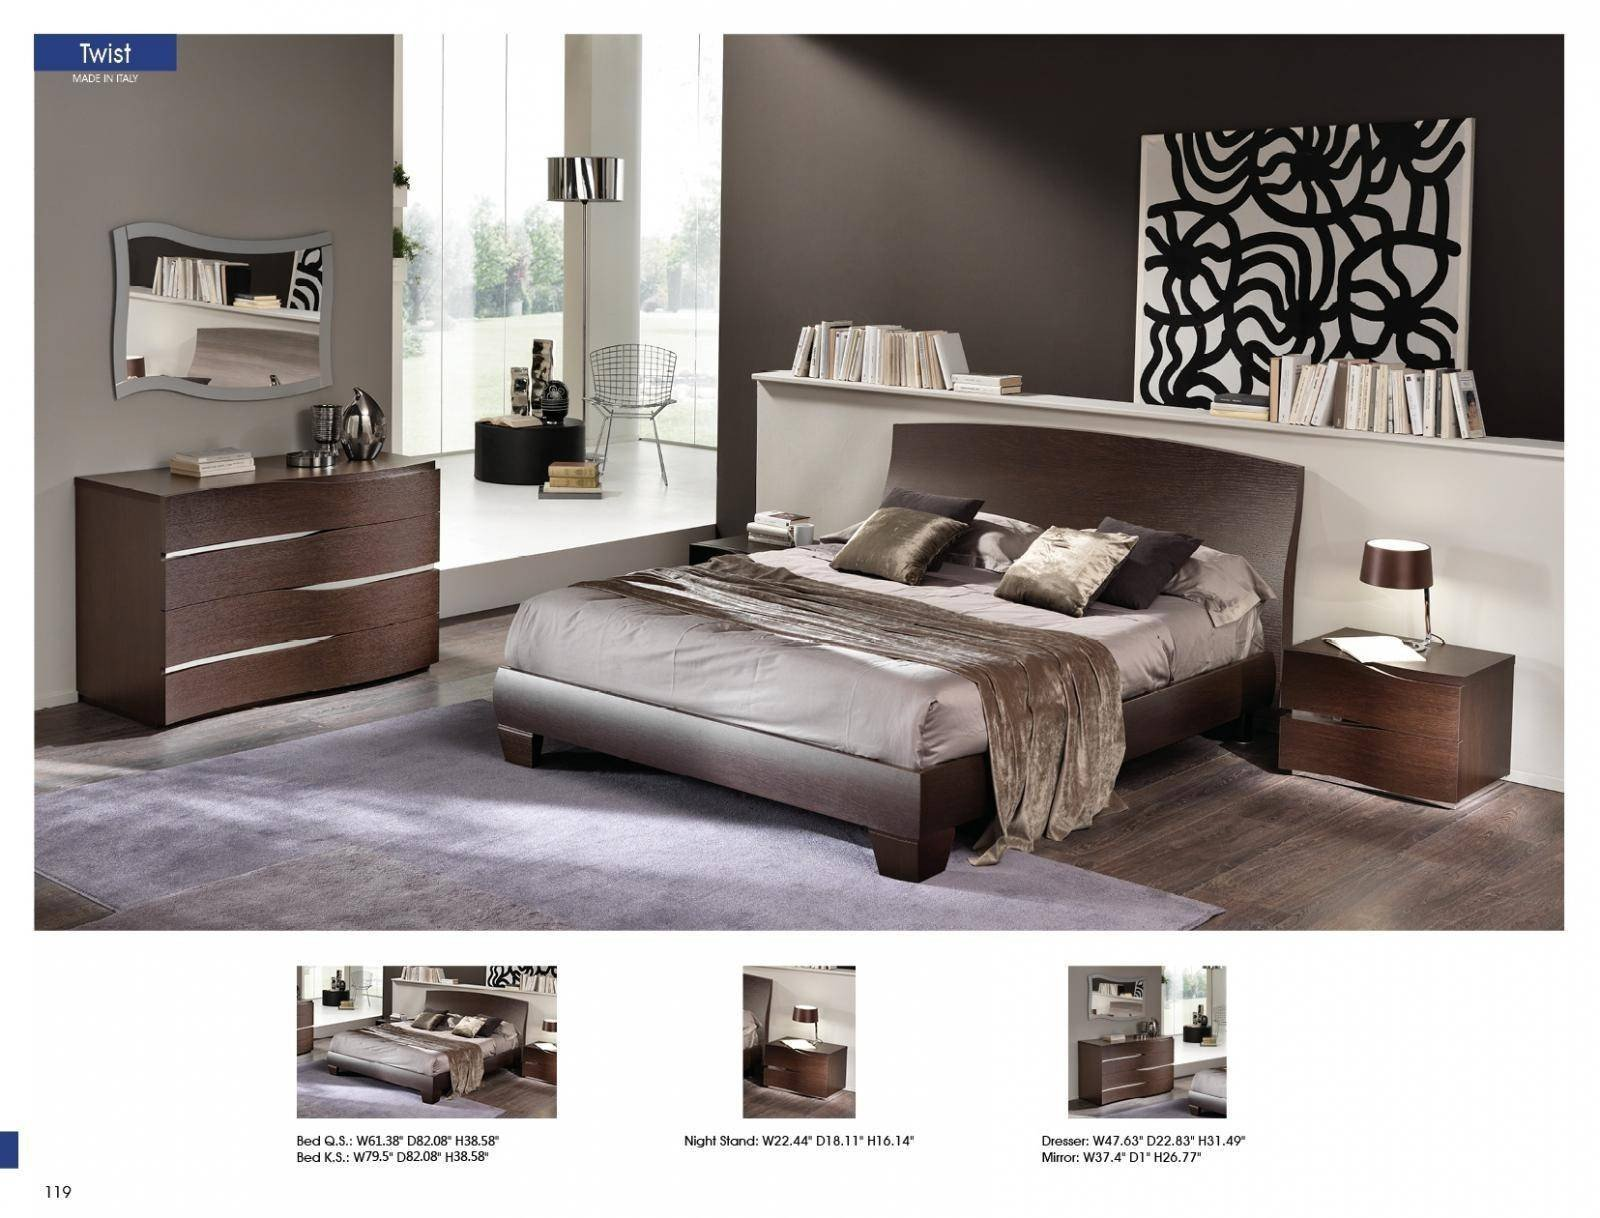 Lighted Headboard Bedroom Set Lovely Esf Twist Wenge Waved Headboard Queen Bedroom Set 5